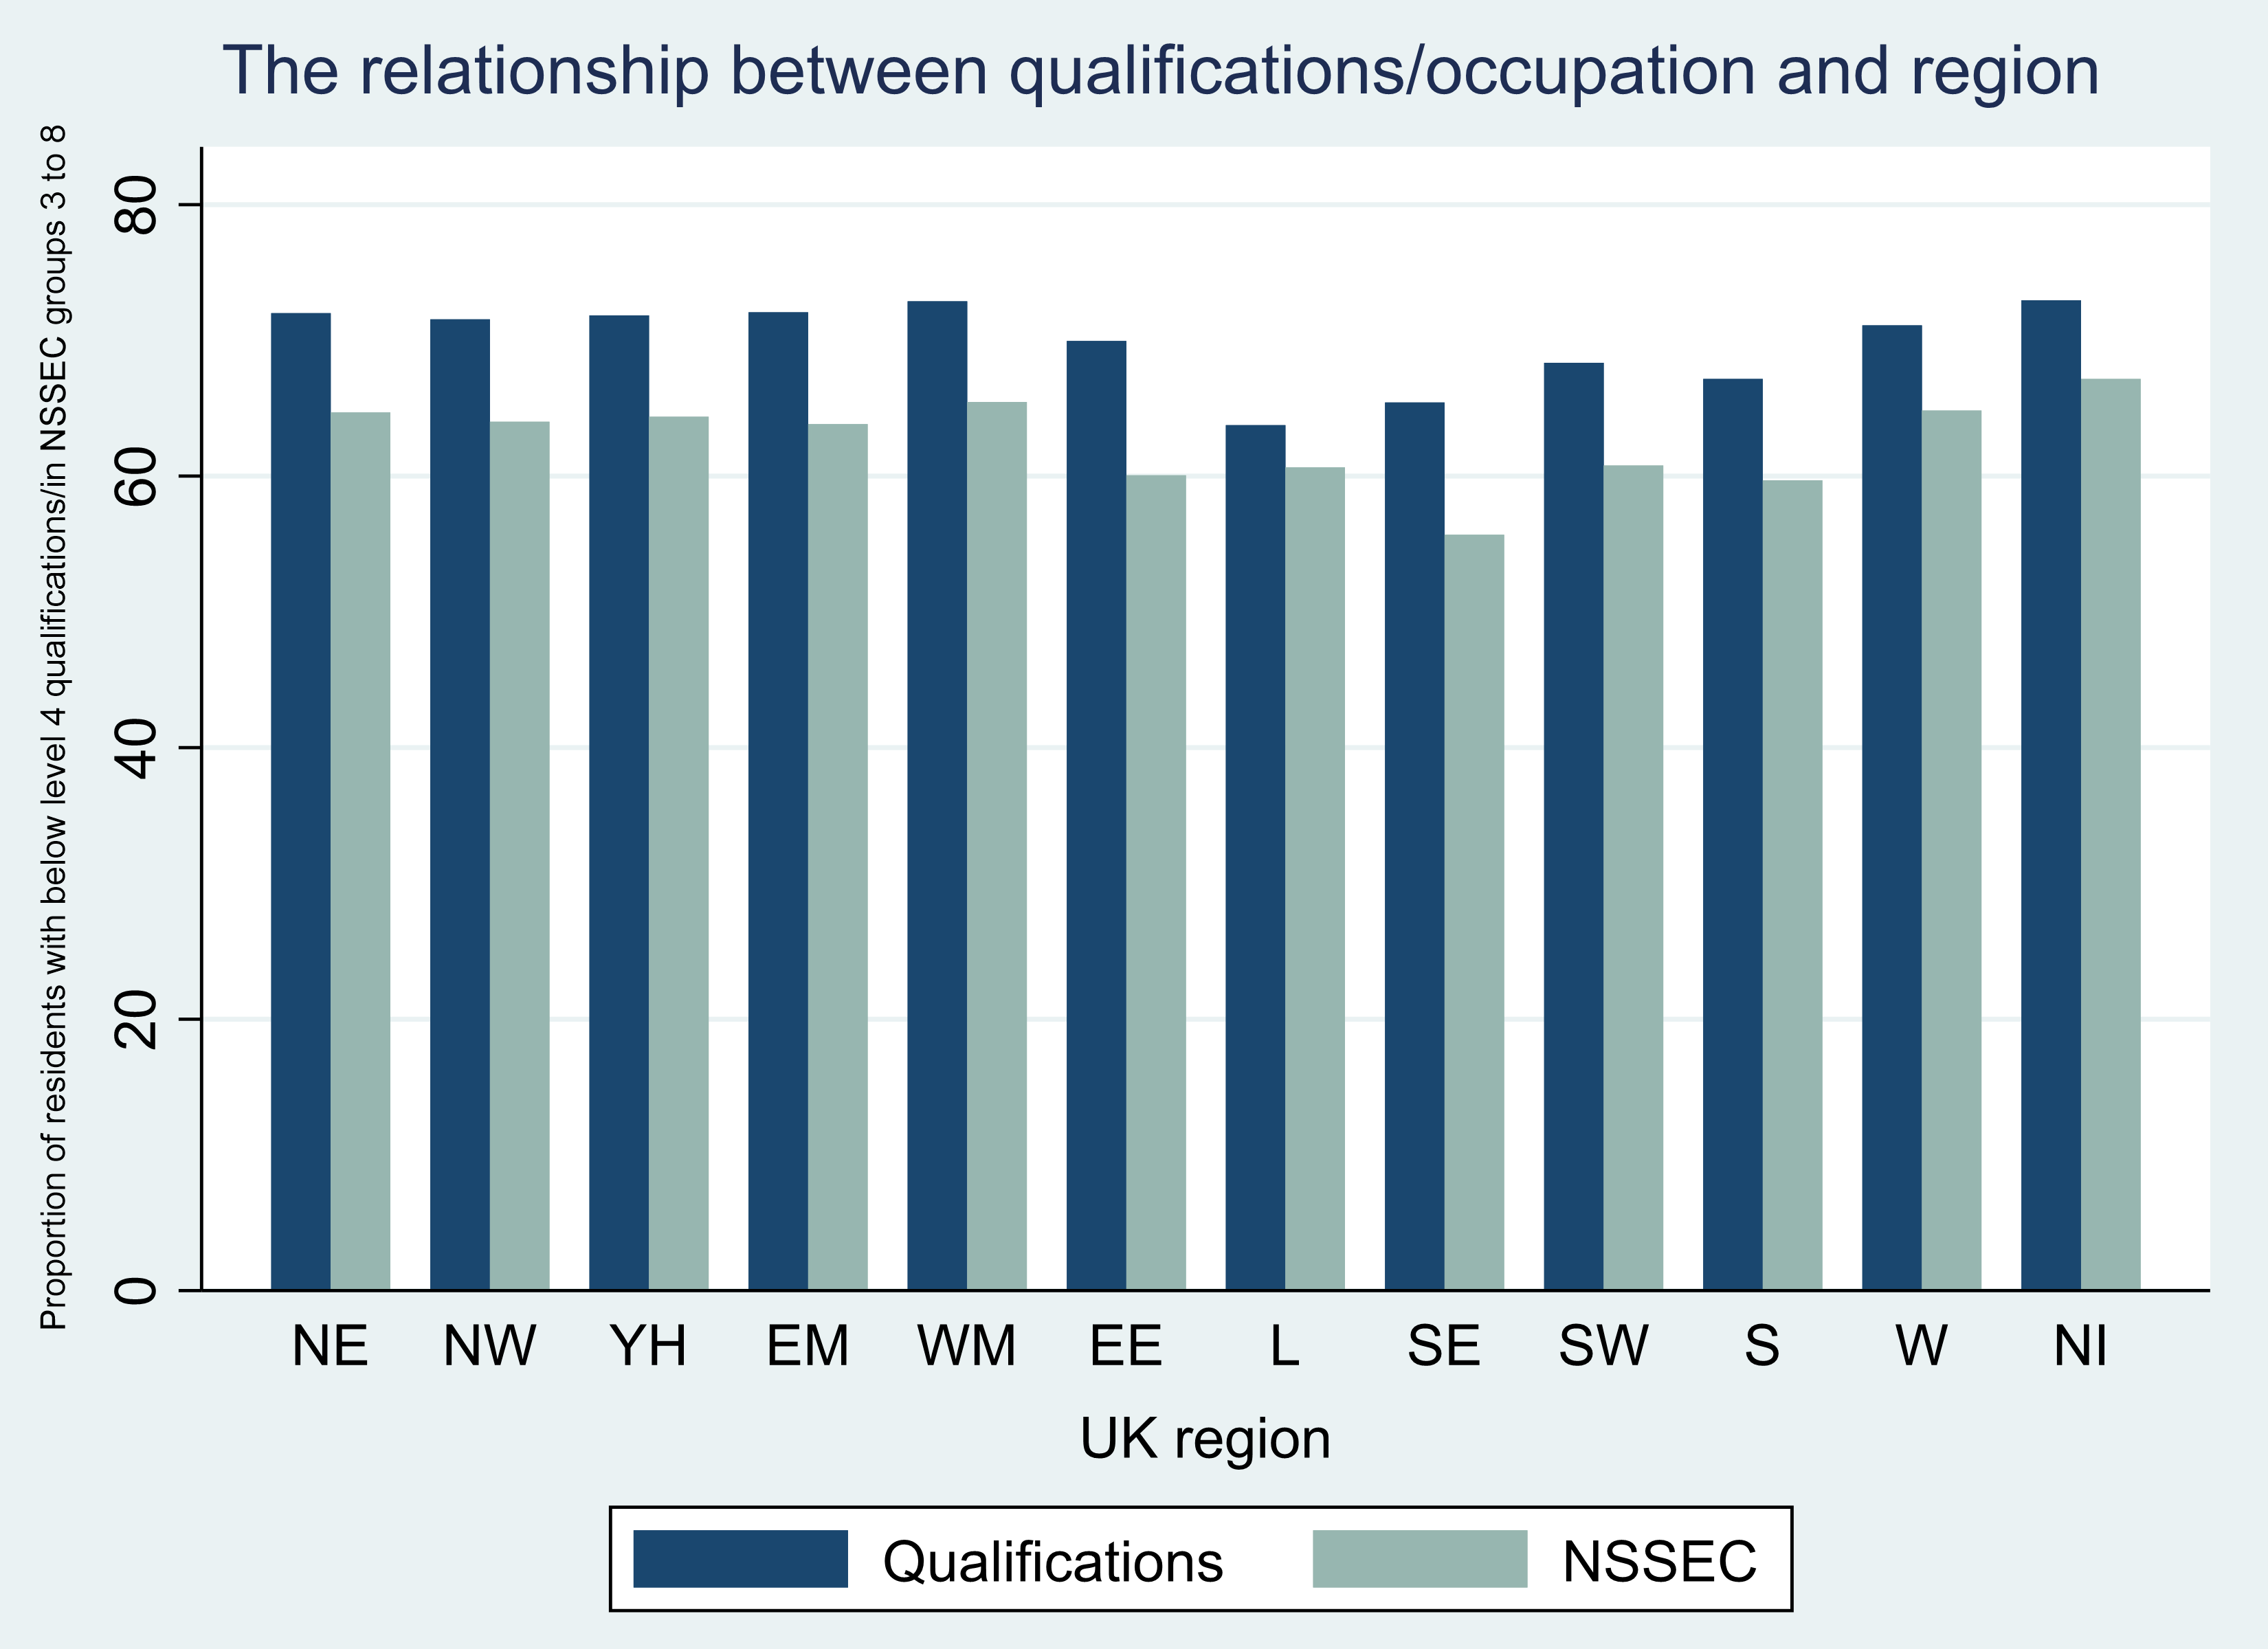 Column chart showing the proportion of residents with below level 4 qualifications and in NSSEC groups 3 to 8 by region. The two measures correlate very closely. Further detail is described in the text of the page.